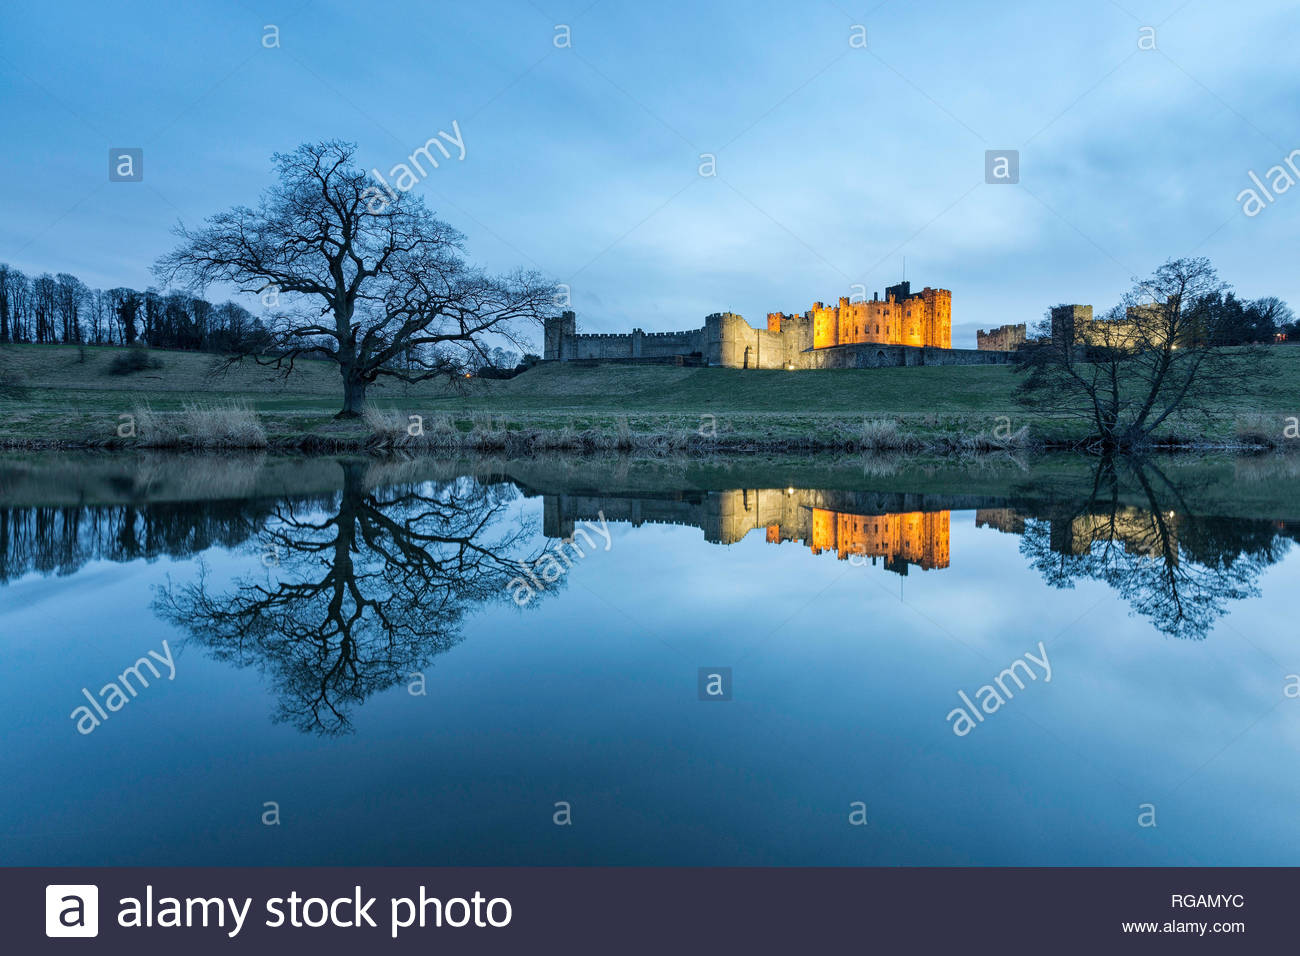 Alnwick Castle and the River Aln, Northumberland, England - Stock Image